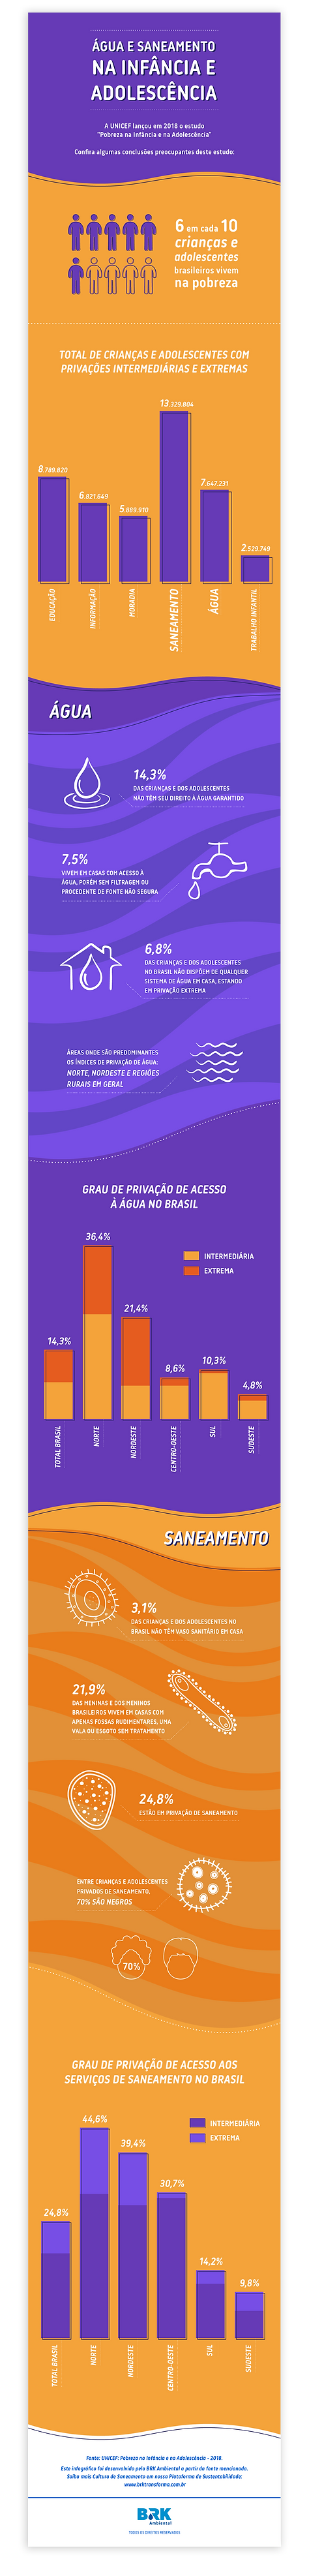 infografico-1.png